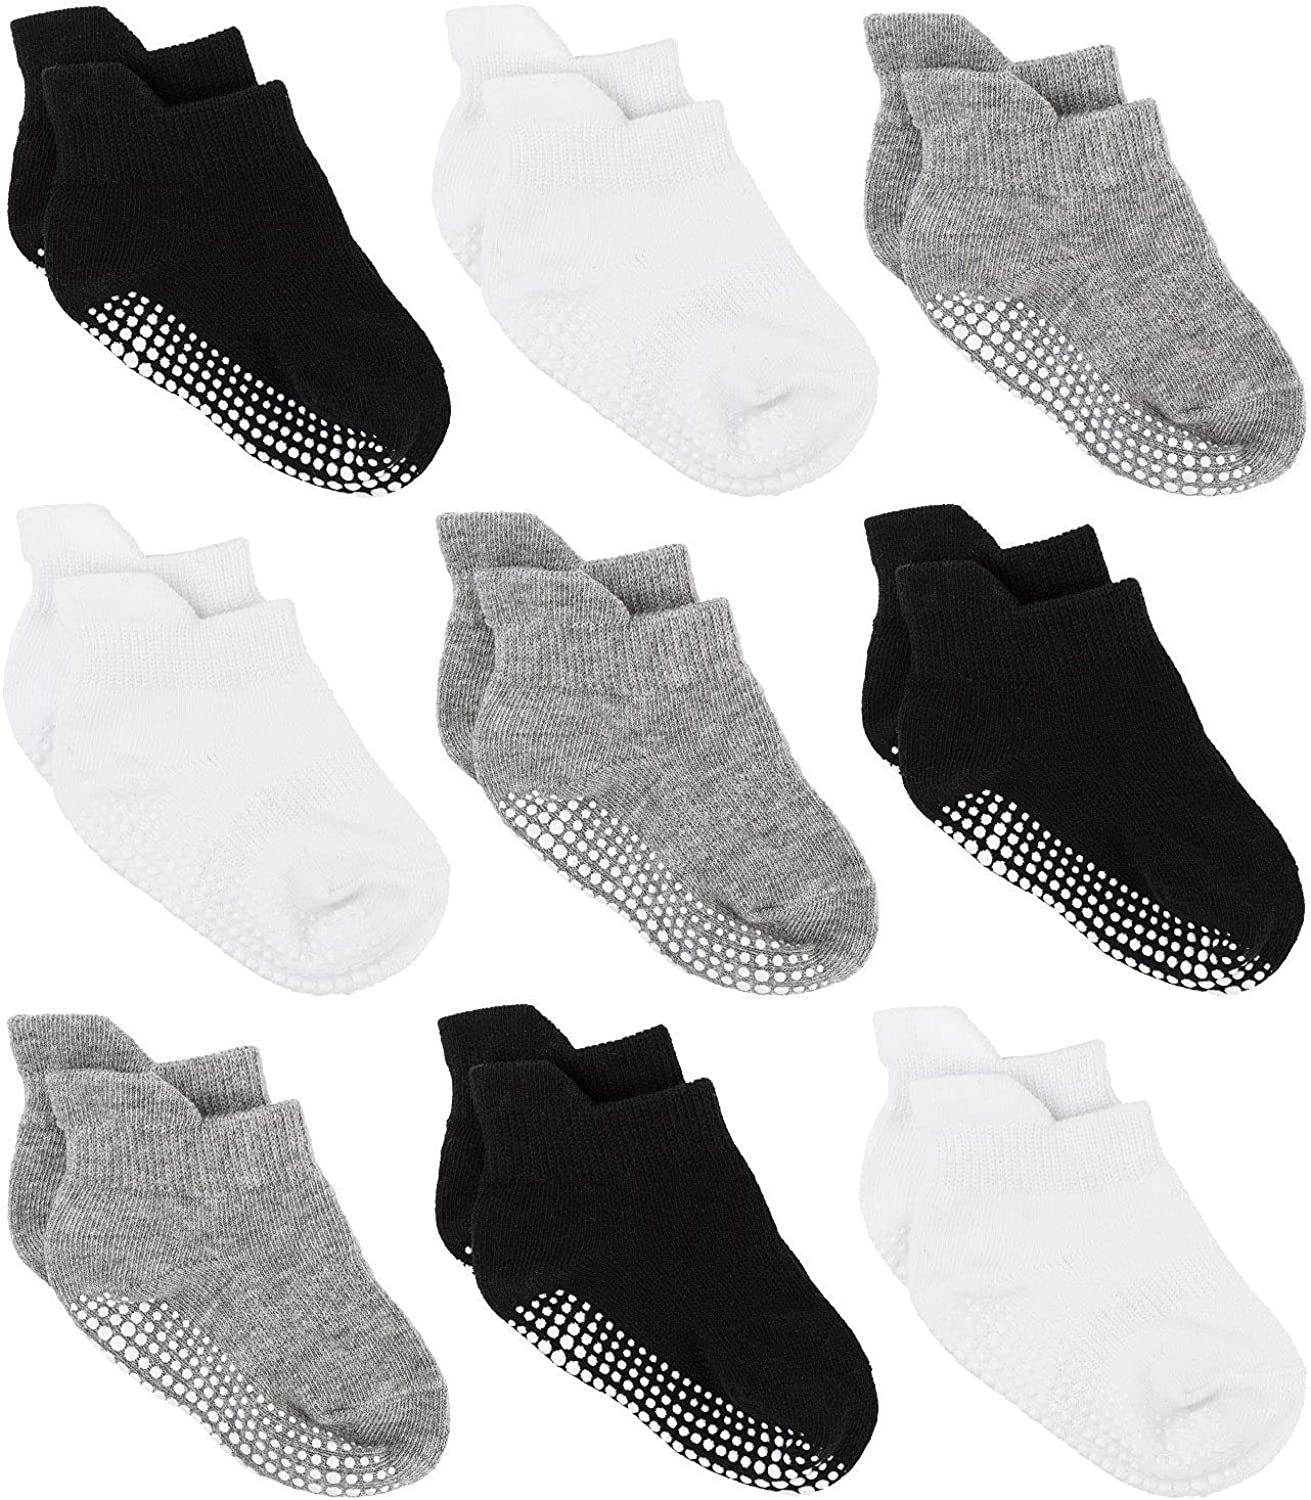 Zaples Baby Non Slip Grip Ankle Socks with Non Skid Soles for Infants Toddlers Kids Boys Girls: Clothing